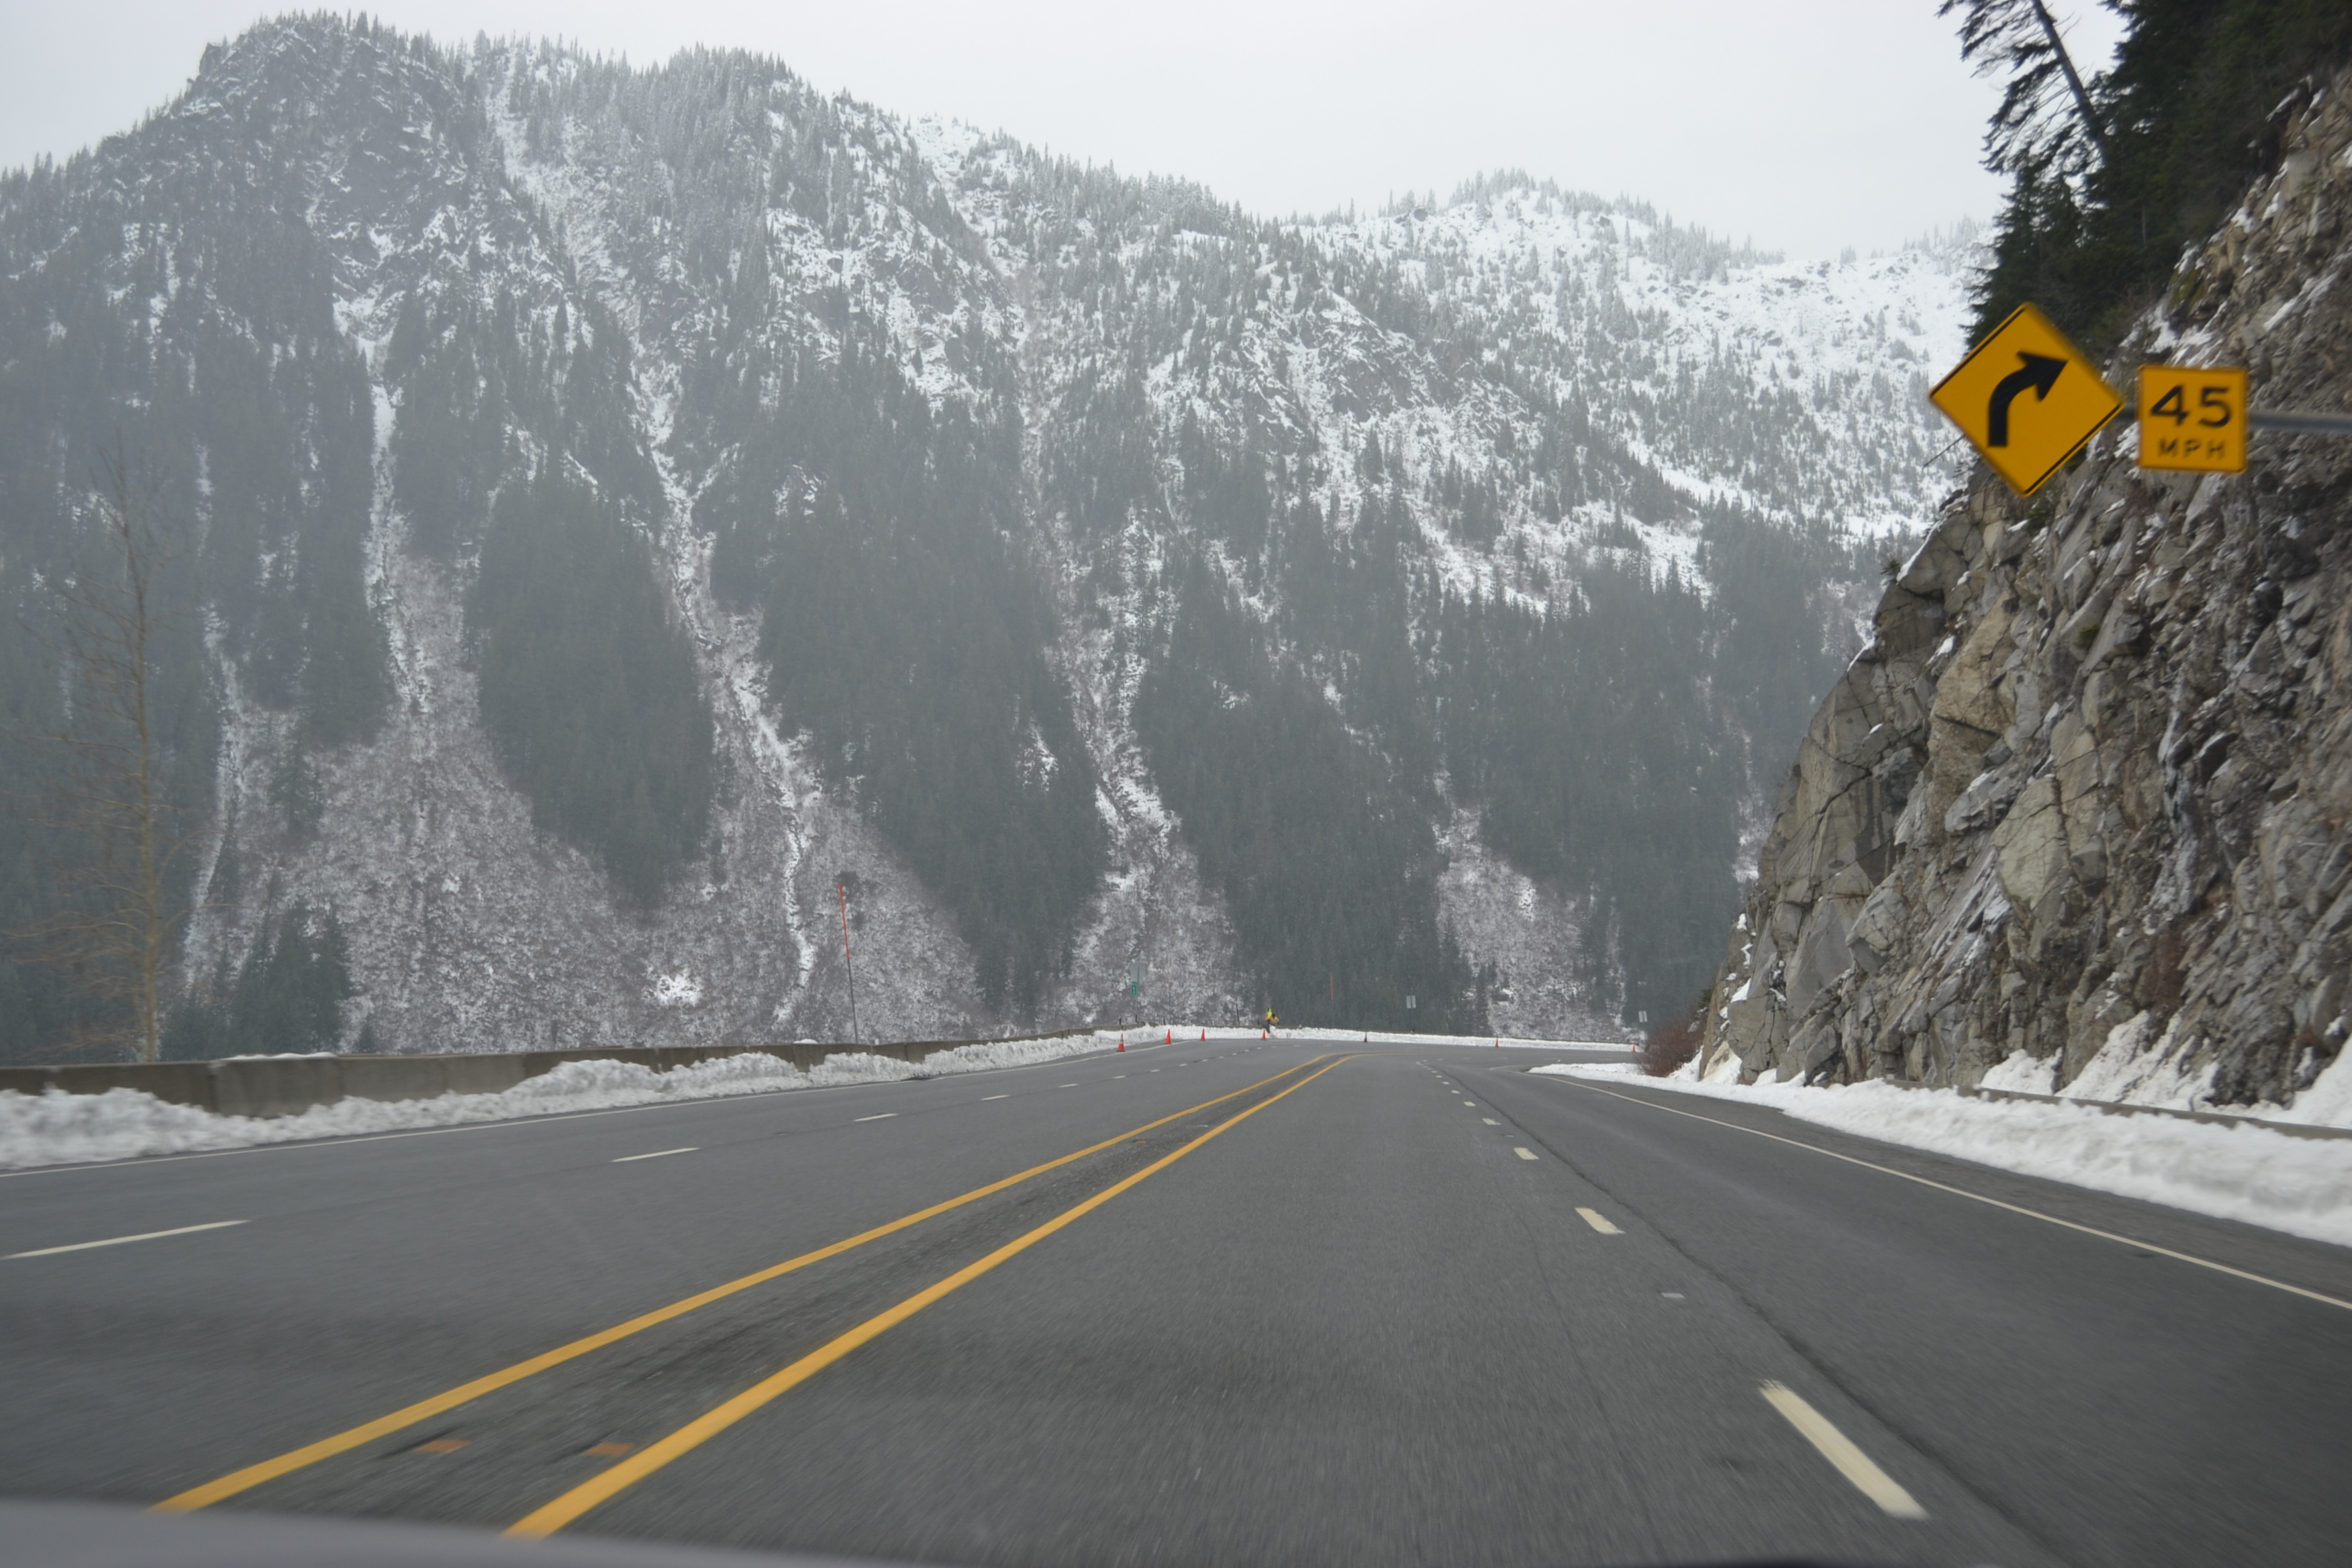 Rock Road Trip The Ultimate Collection: The Ultimate Christmas Road Trip Playlist